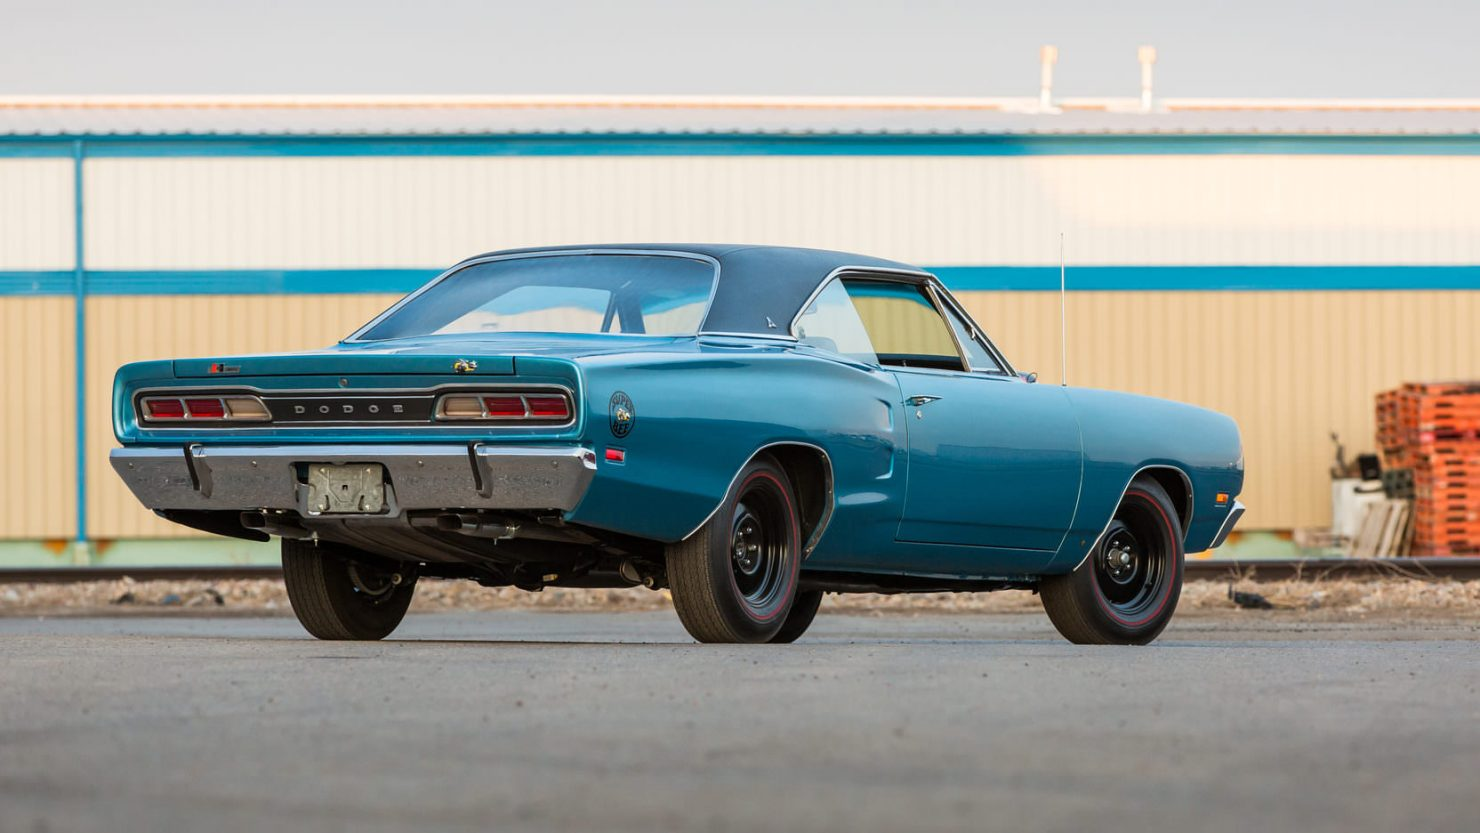 Dodge Super Bee 10 1480x833 - 1969 Dodge Super Bee 440 Six Pack